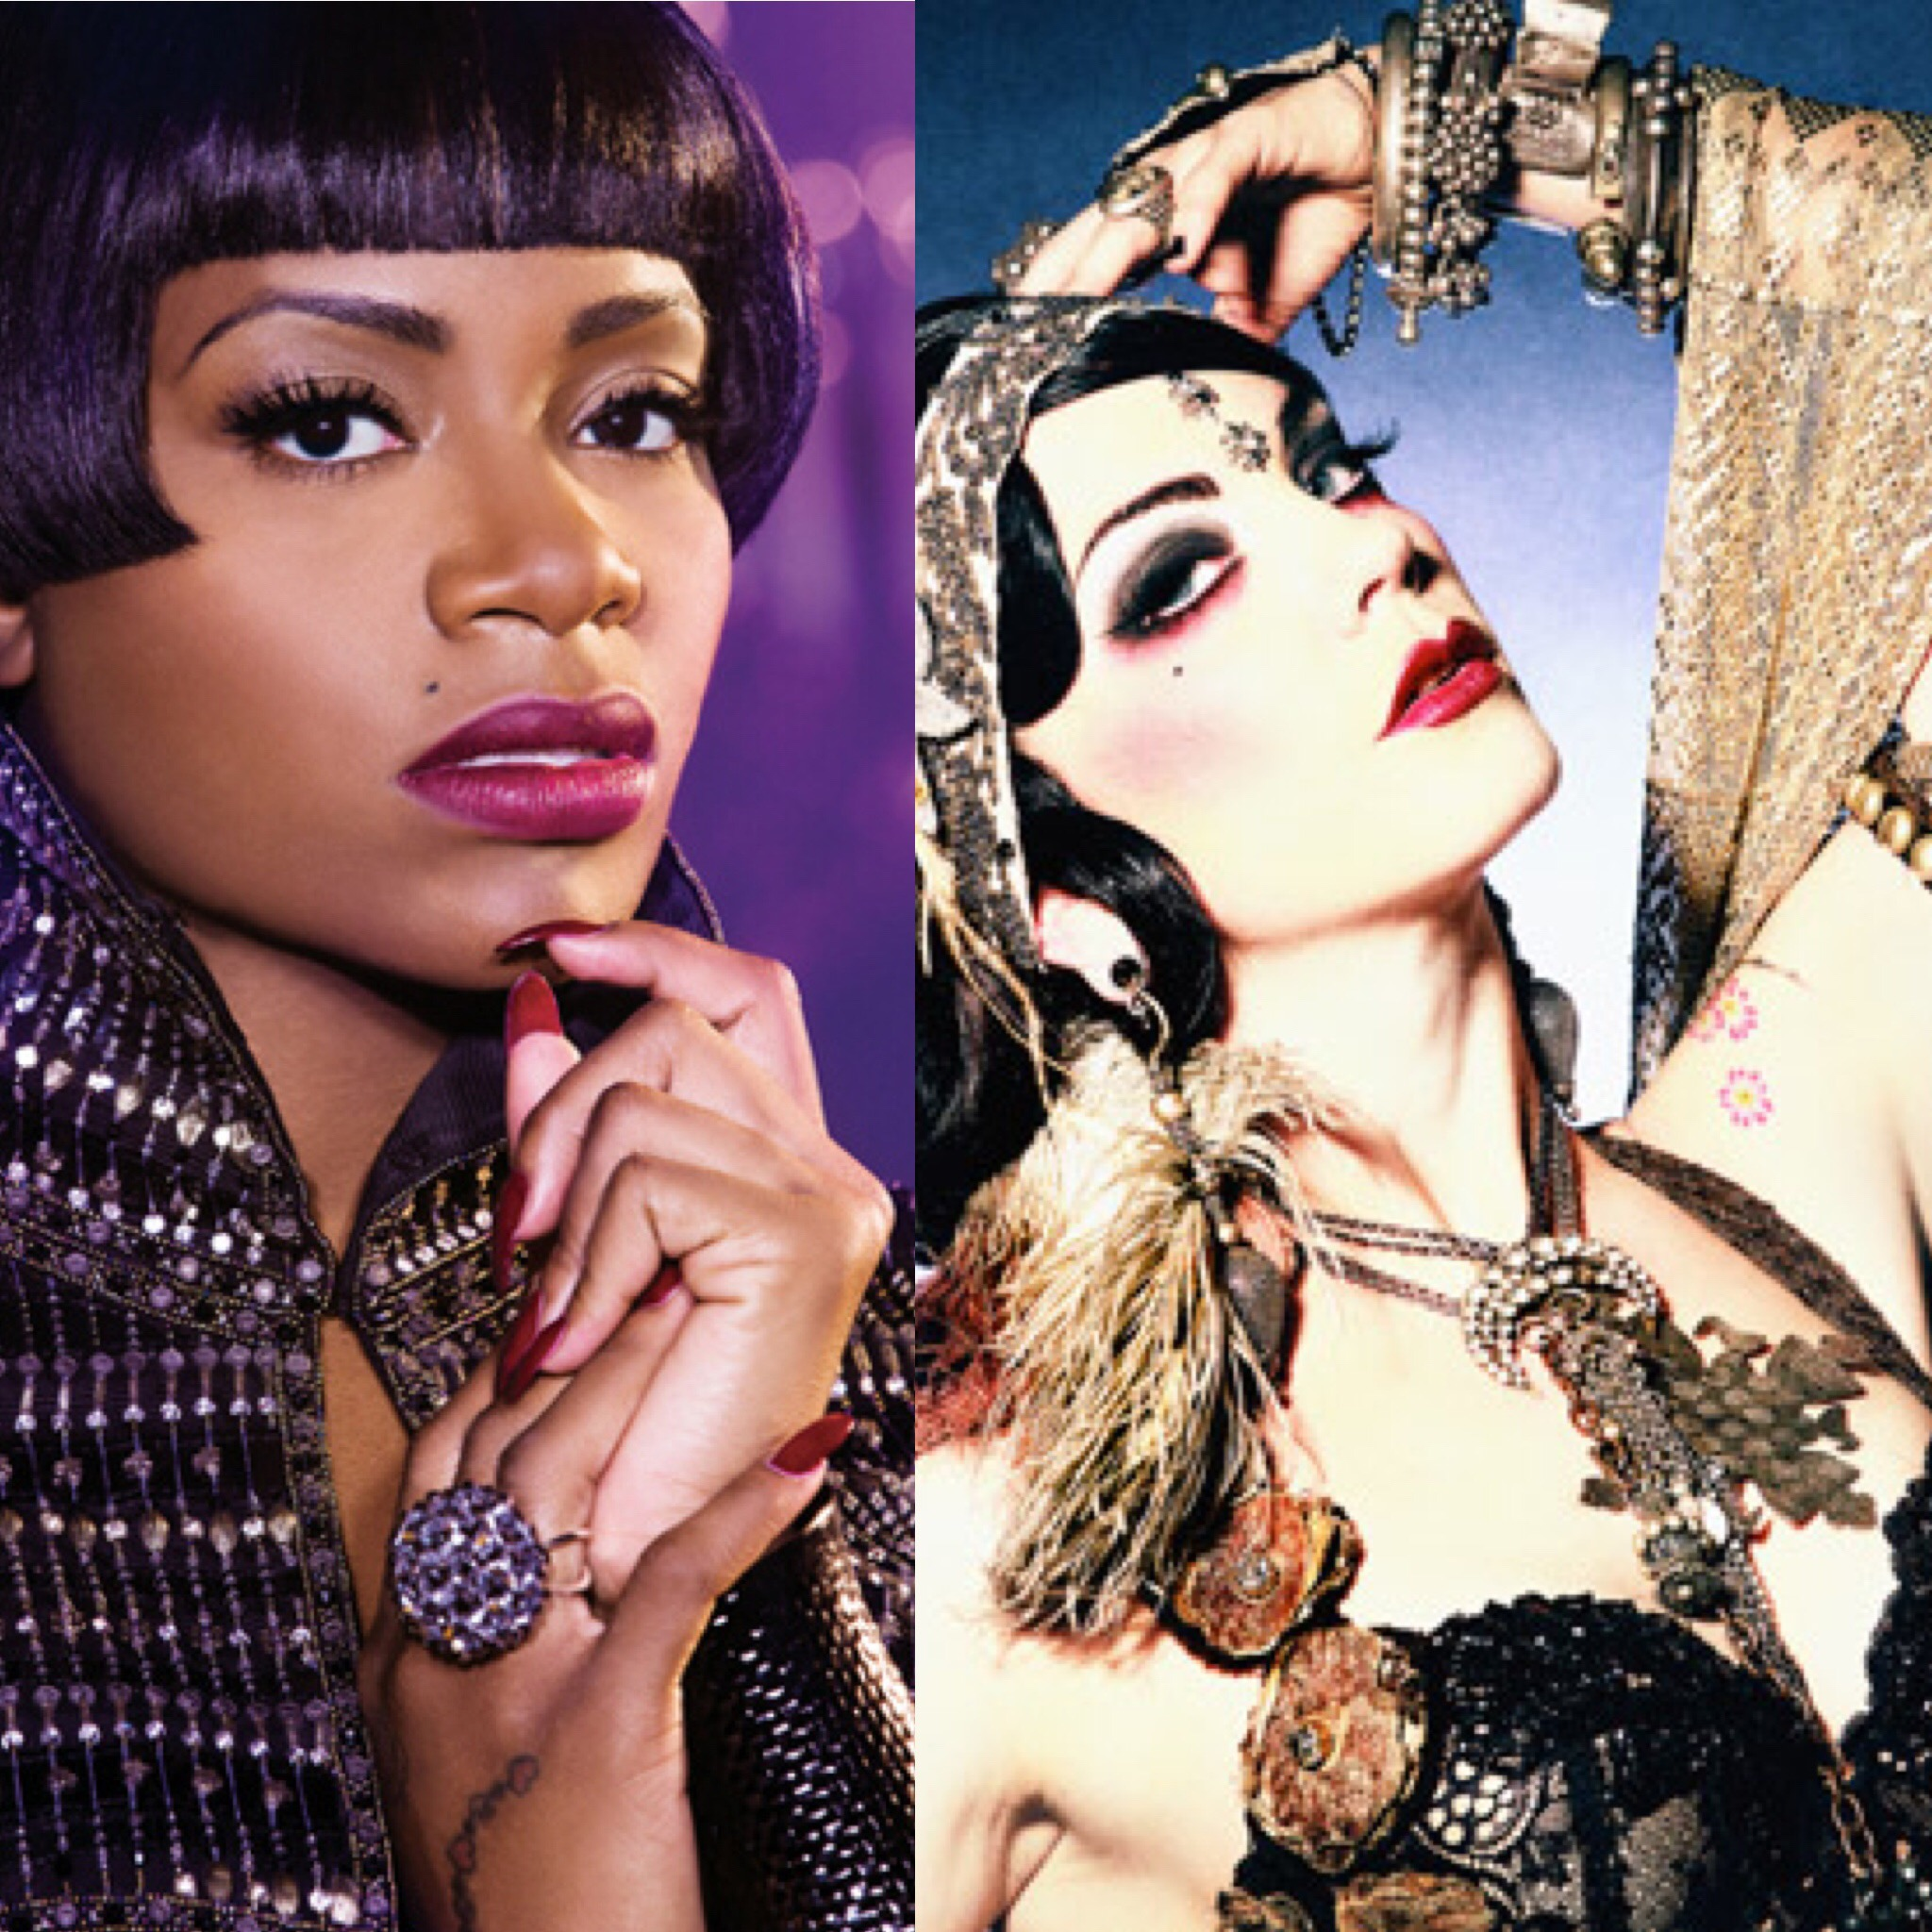 Fantasia Fusion - In this new standalone mashup, The Roustabouts pit Fantasia, Kelly Rowland and Missy Elliot against Beats Antique's eclectic electronica fusion. See worlds collide in the video!